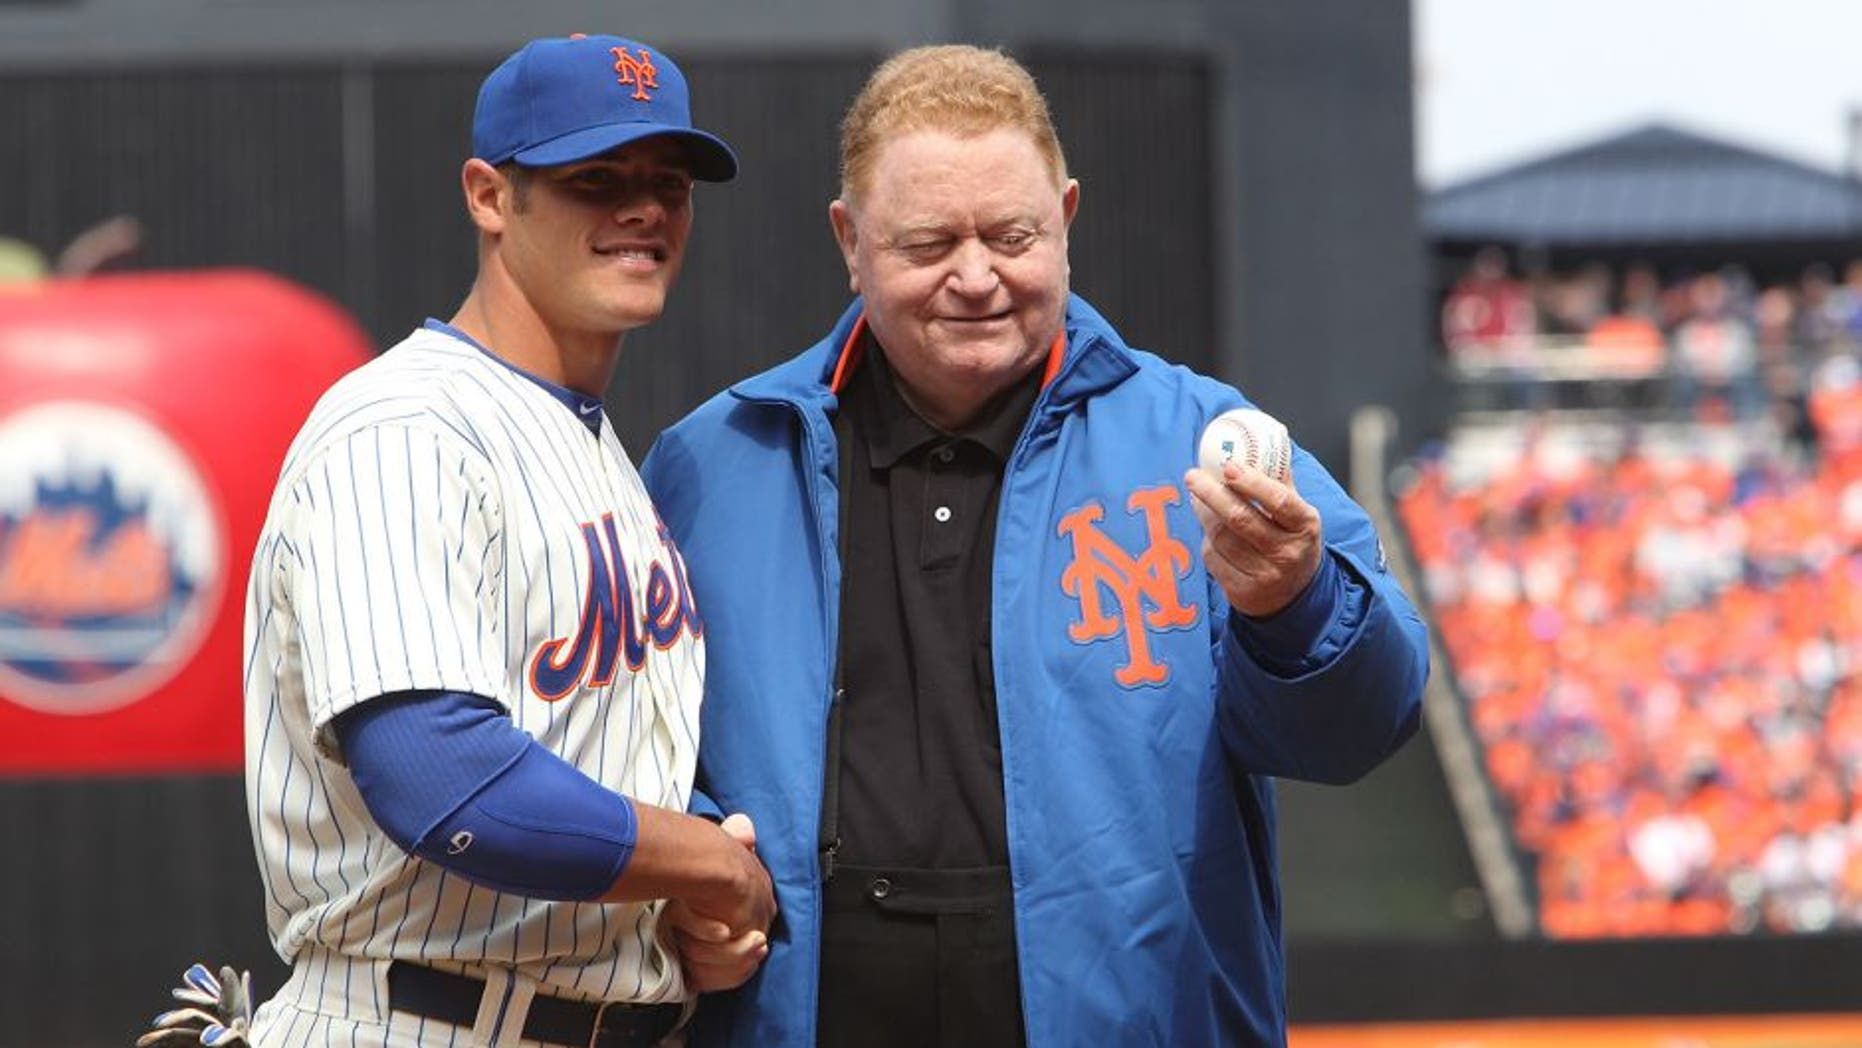 NEW YORK, NY - APRIL 01: Former New York Mets player Rusty Staub throws out the first pitch to Catcher Anthony Recker #20 of the New York Mets before the game against the San Diego Padres on Opening Day at Citi Field on April 1, 2013 in New York City. Mets beat the Padres, 11-2. (Photo by Al Pereira/Getty Images)